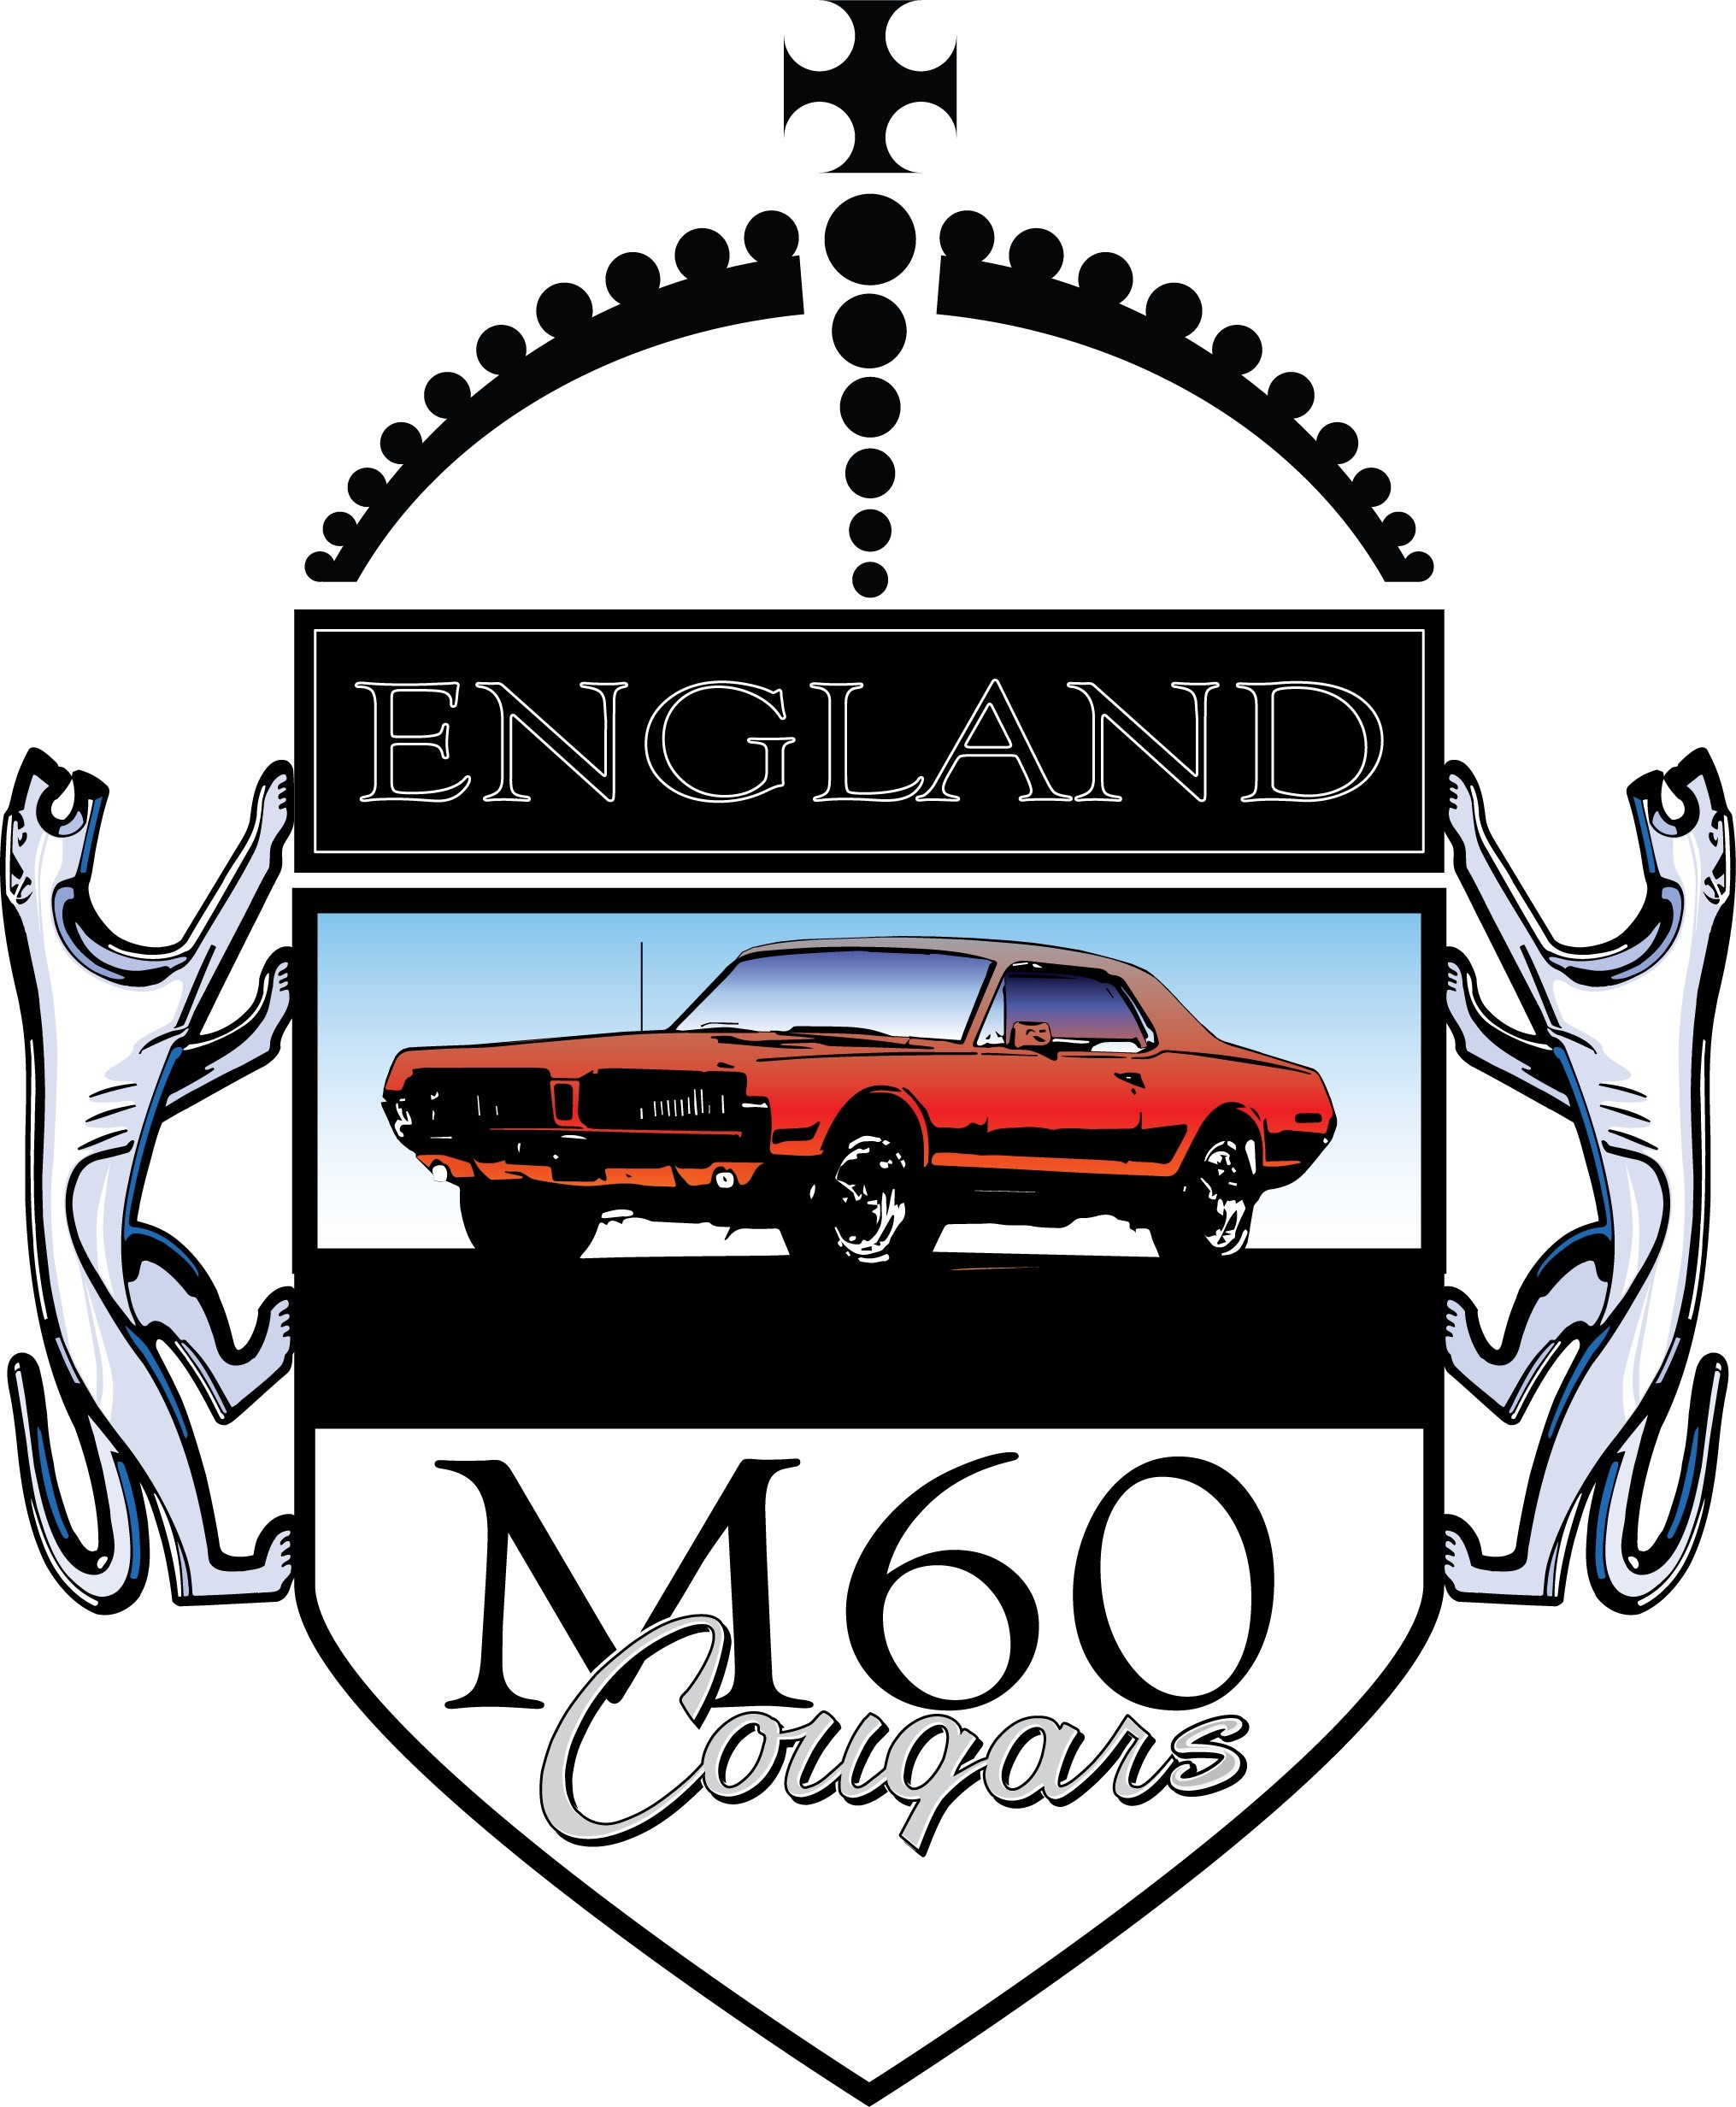 M60 Cougars